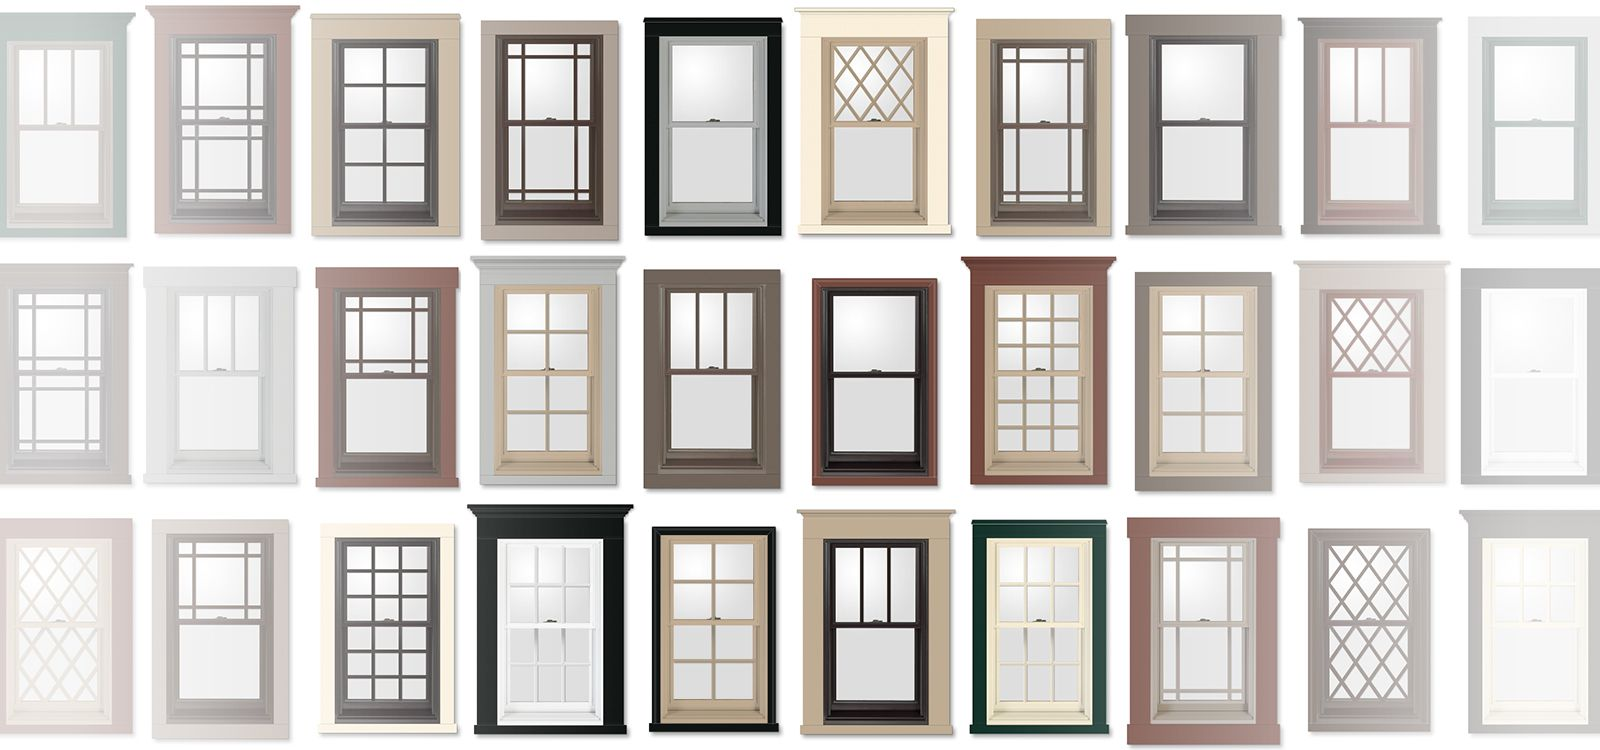 Andersen windows and patio doors 1 in quality and used for Replacement window design ideas